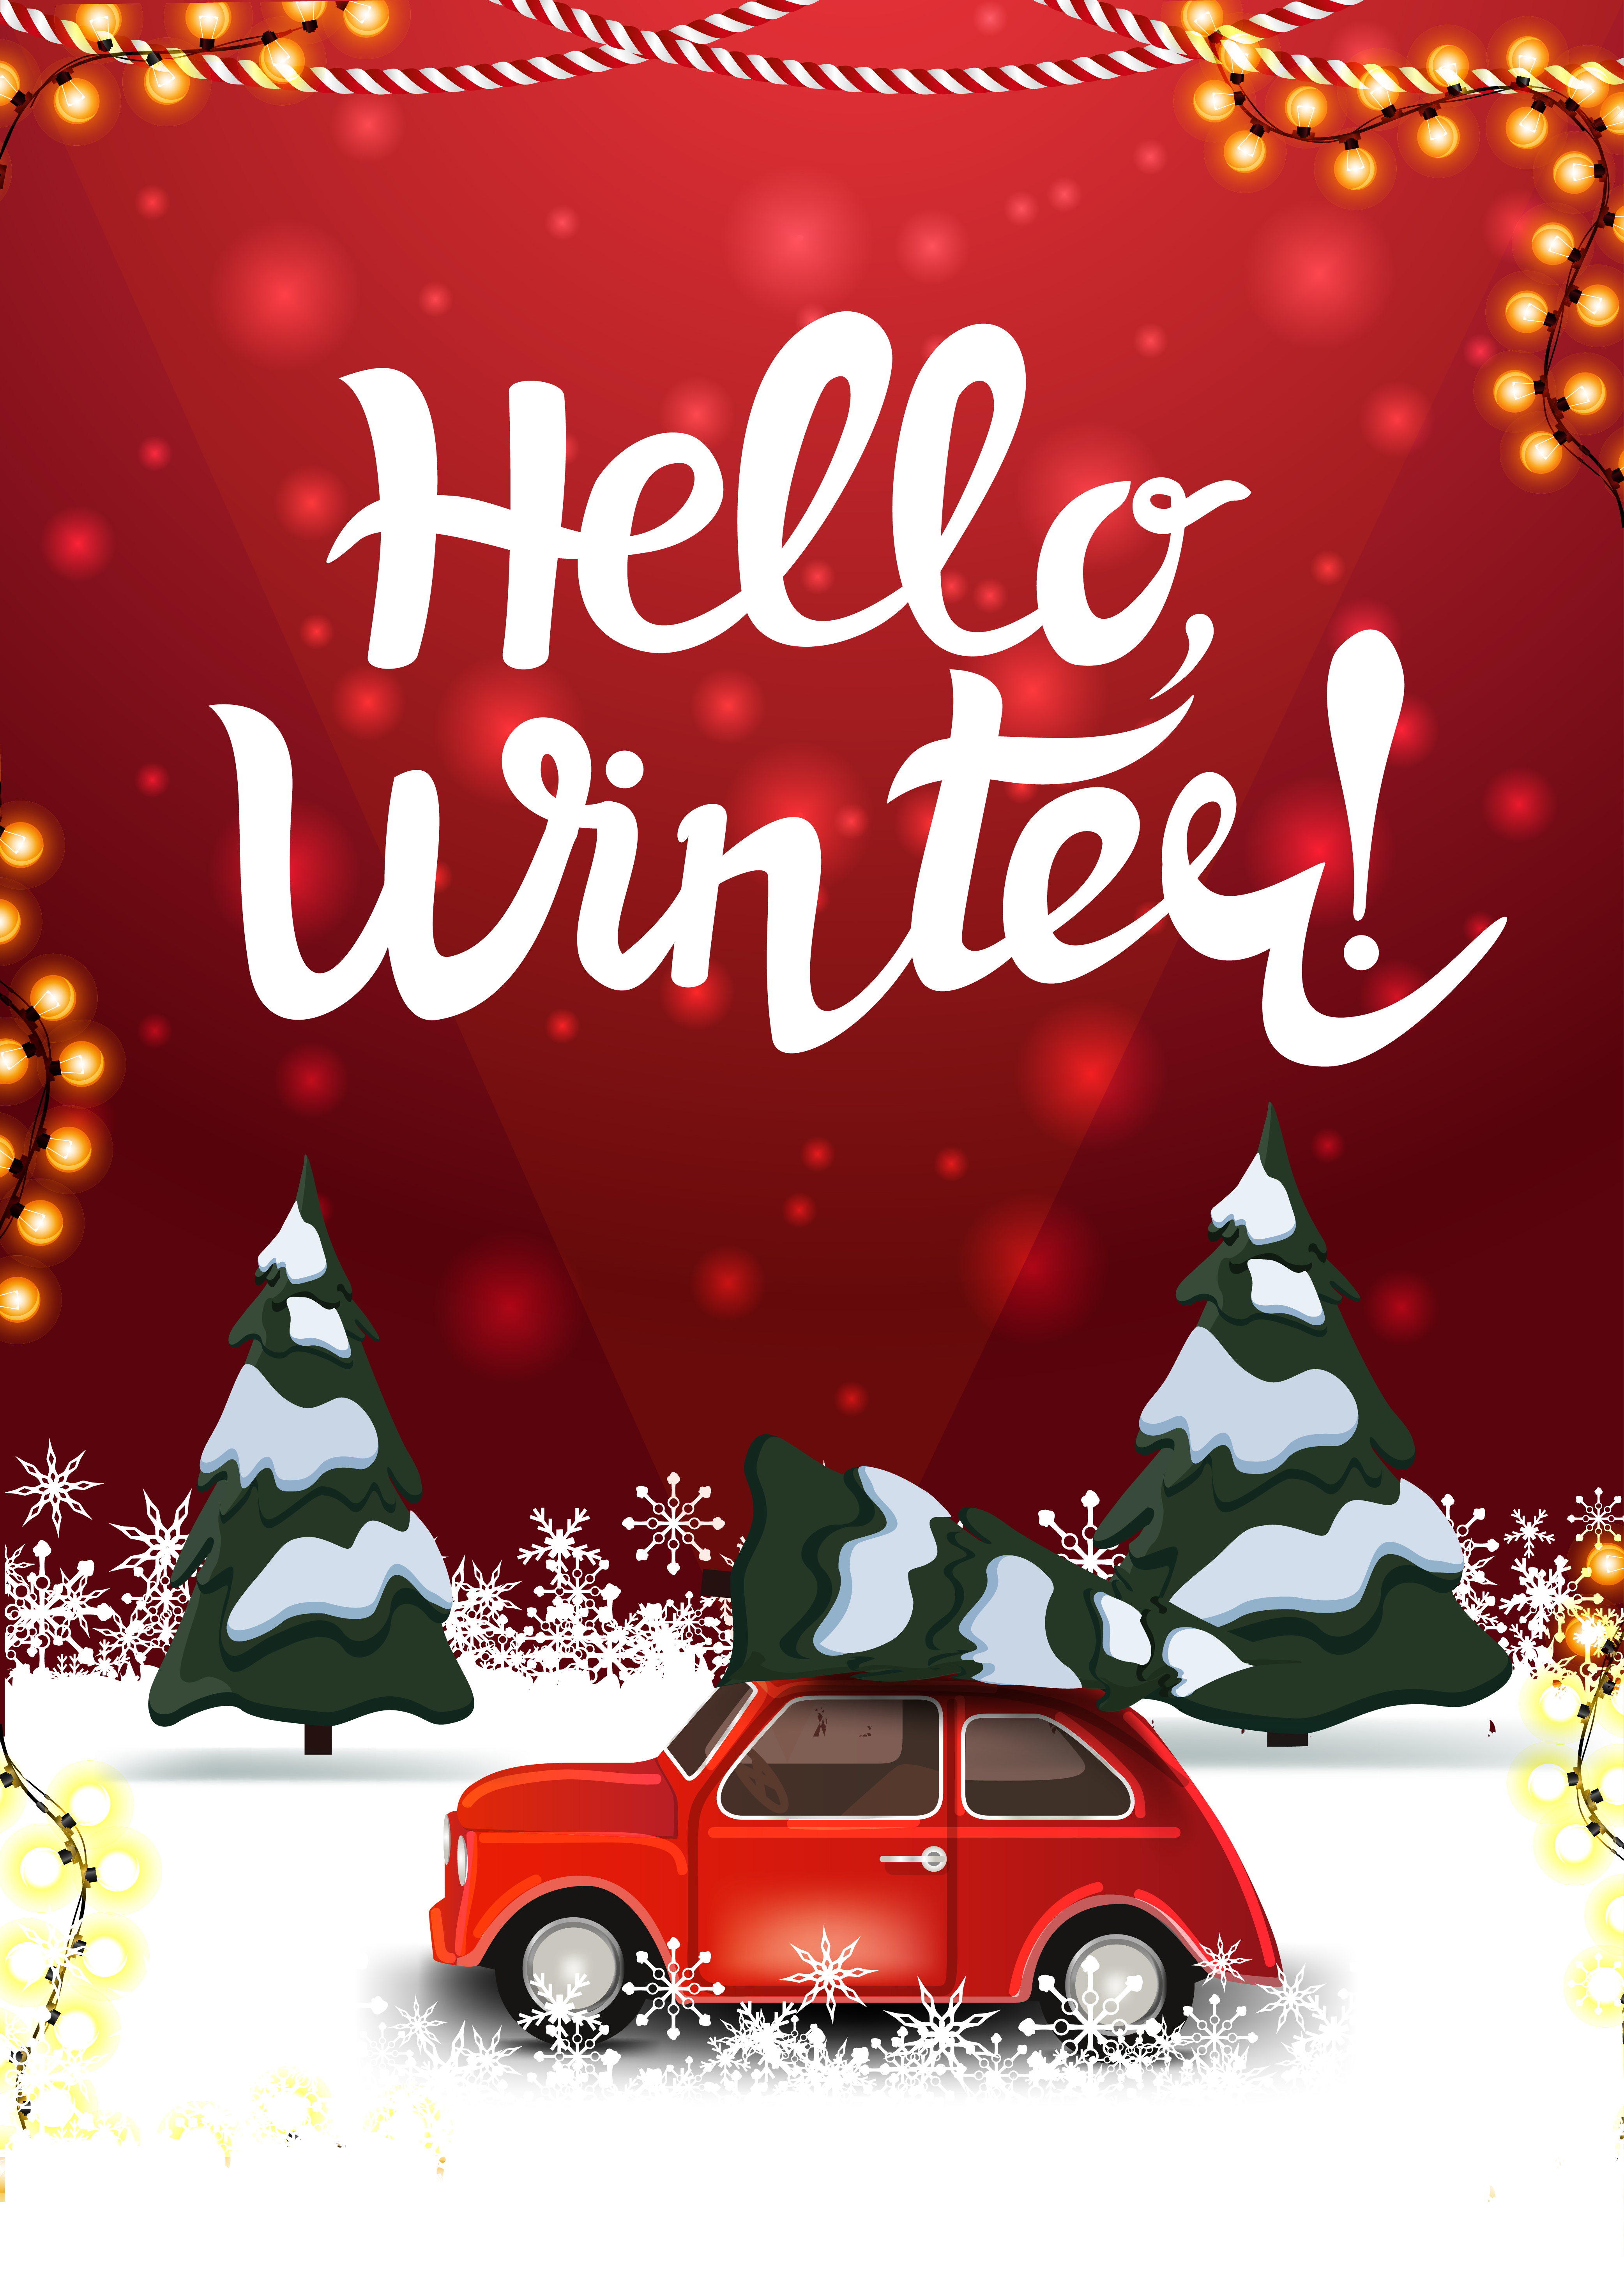 Hello Winter Red Postcard With Pine Winter Forest And Red Vintage Car Carrying Christmas Tree Download Free Vectors Clipart Graphics Vector Art